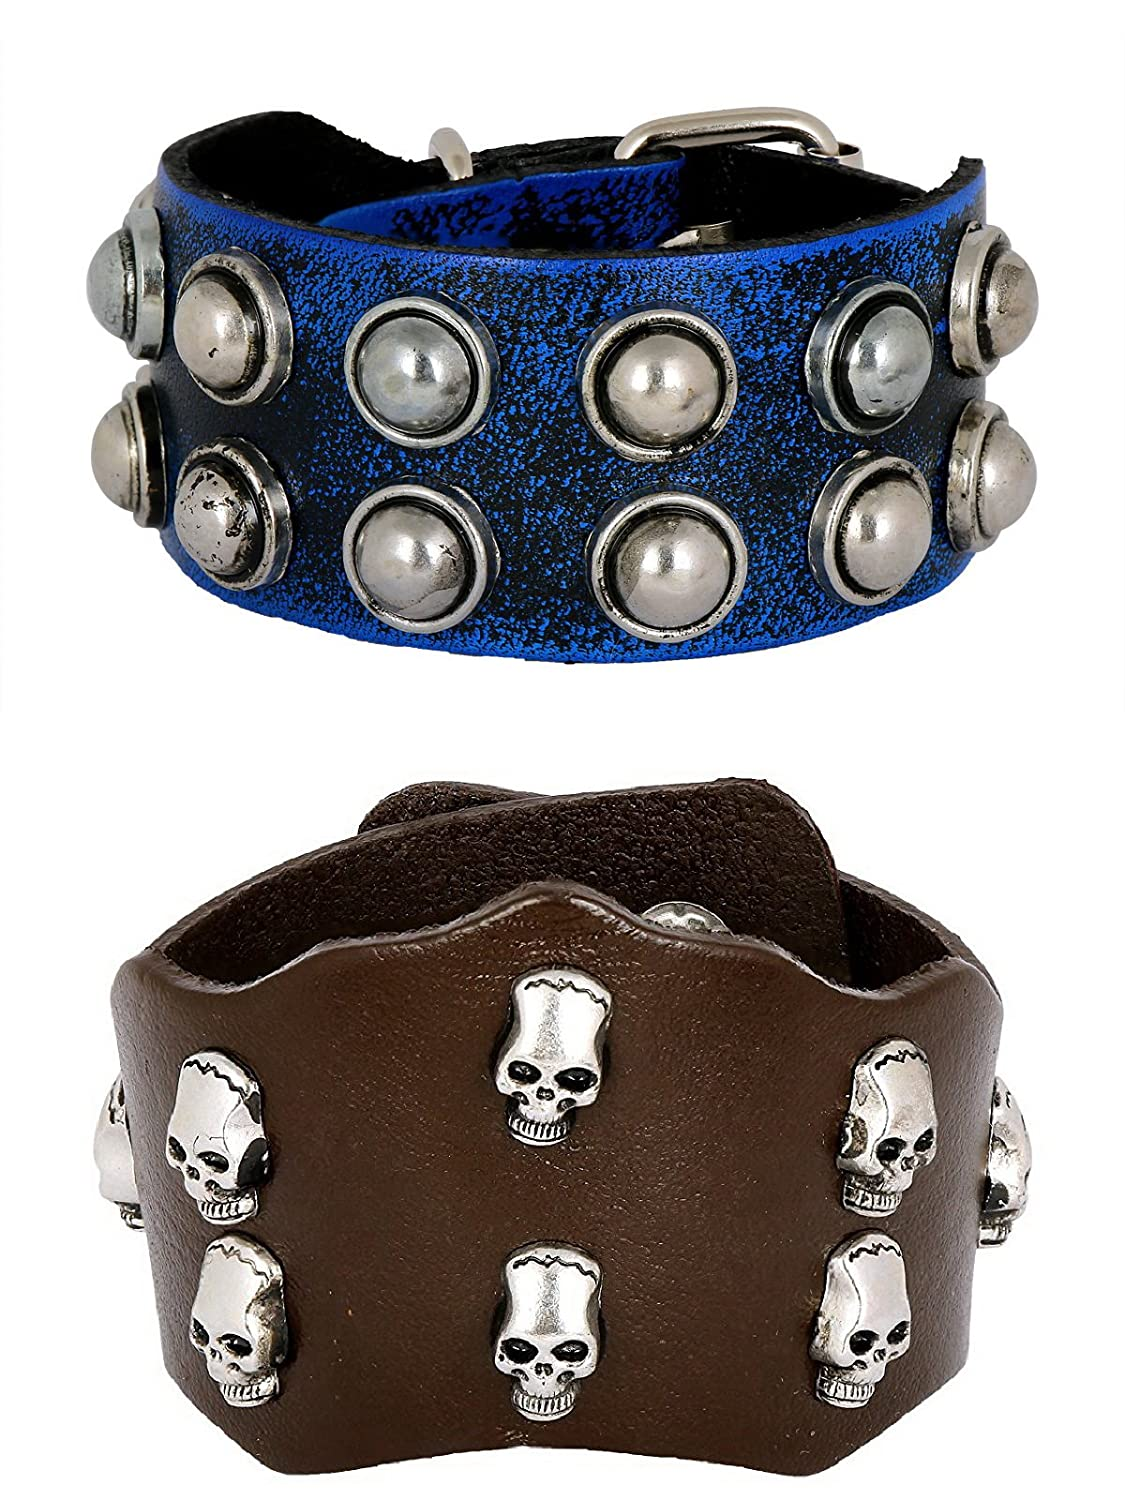 ZIVOM Casual Burnt Blue Black Handcrafted /& Funky Punk Skull Dark Brown Leather Combo Pack of 2 Bracelet Boys Men